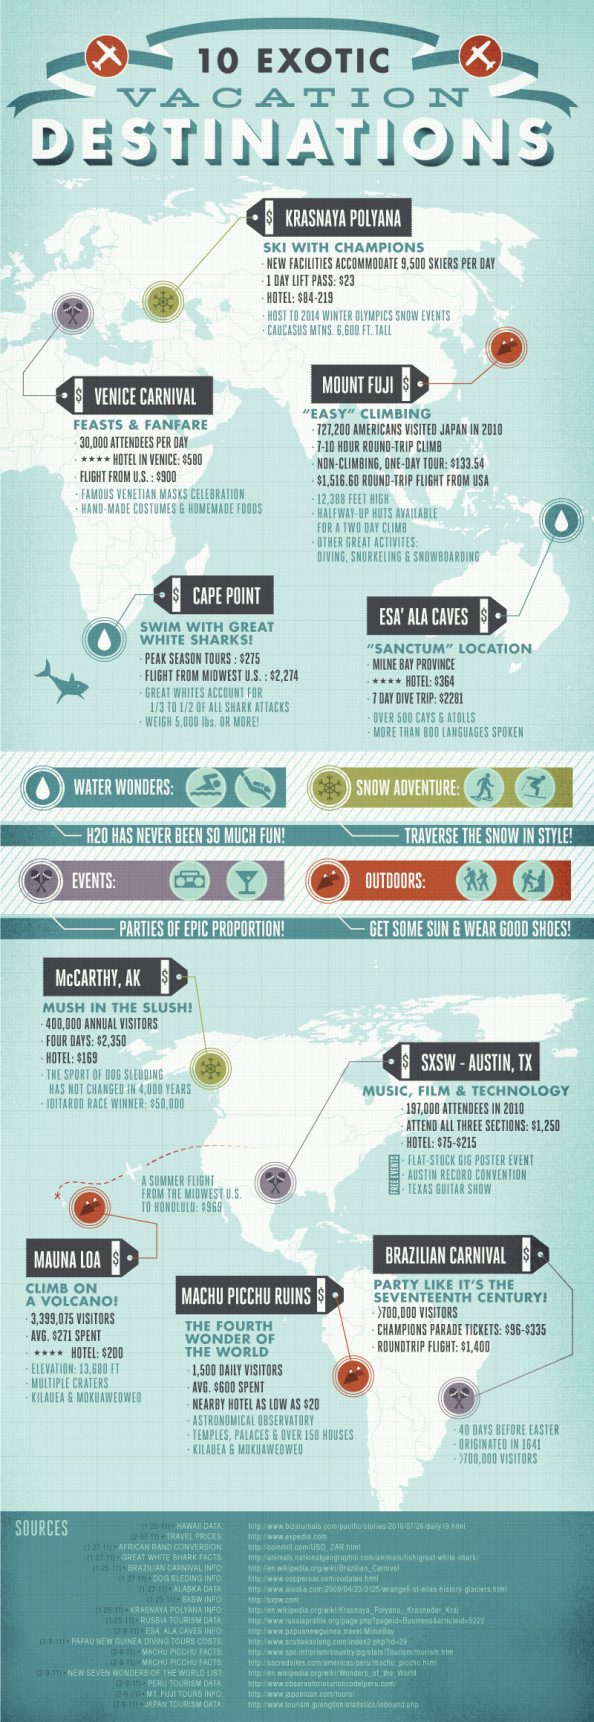 10 Exotic Destination Vacations  Infographic